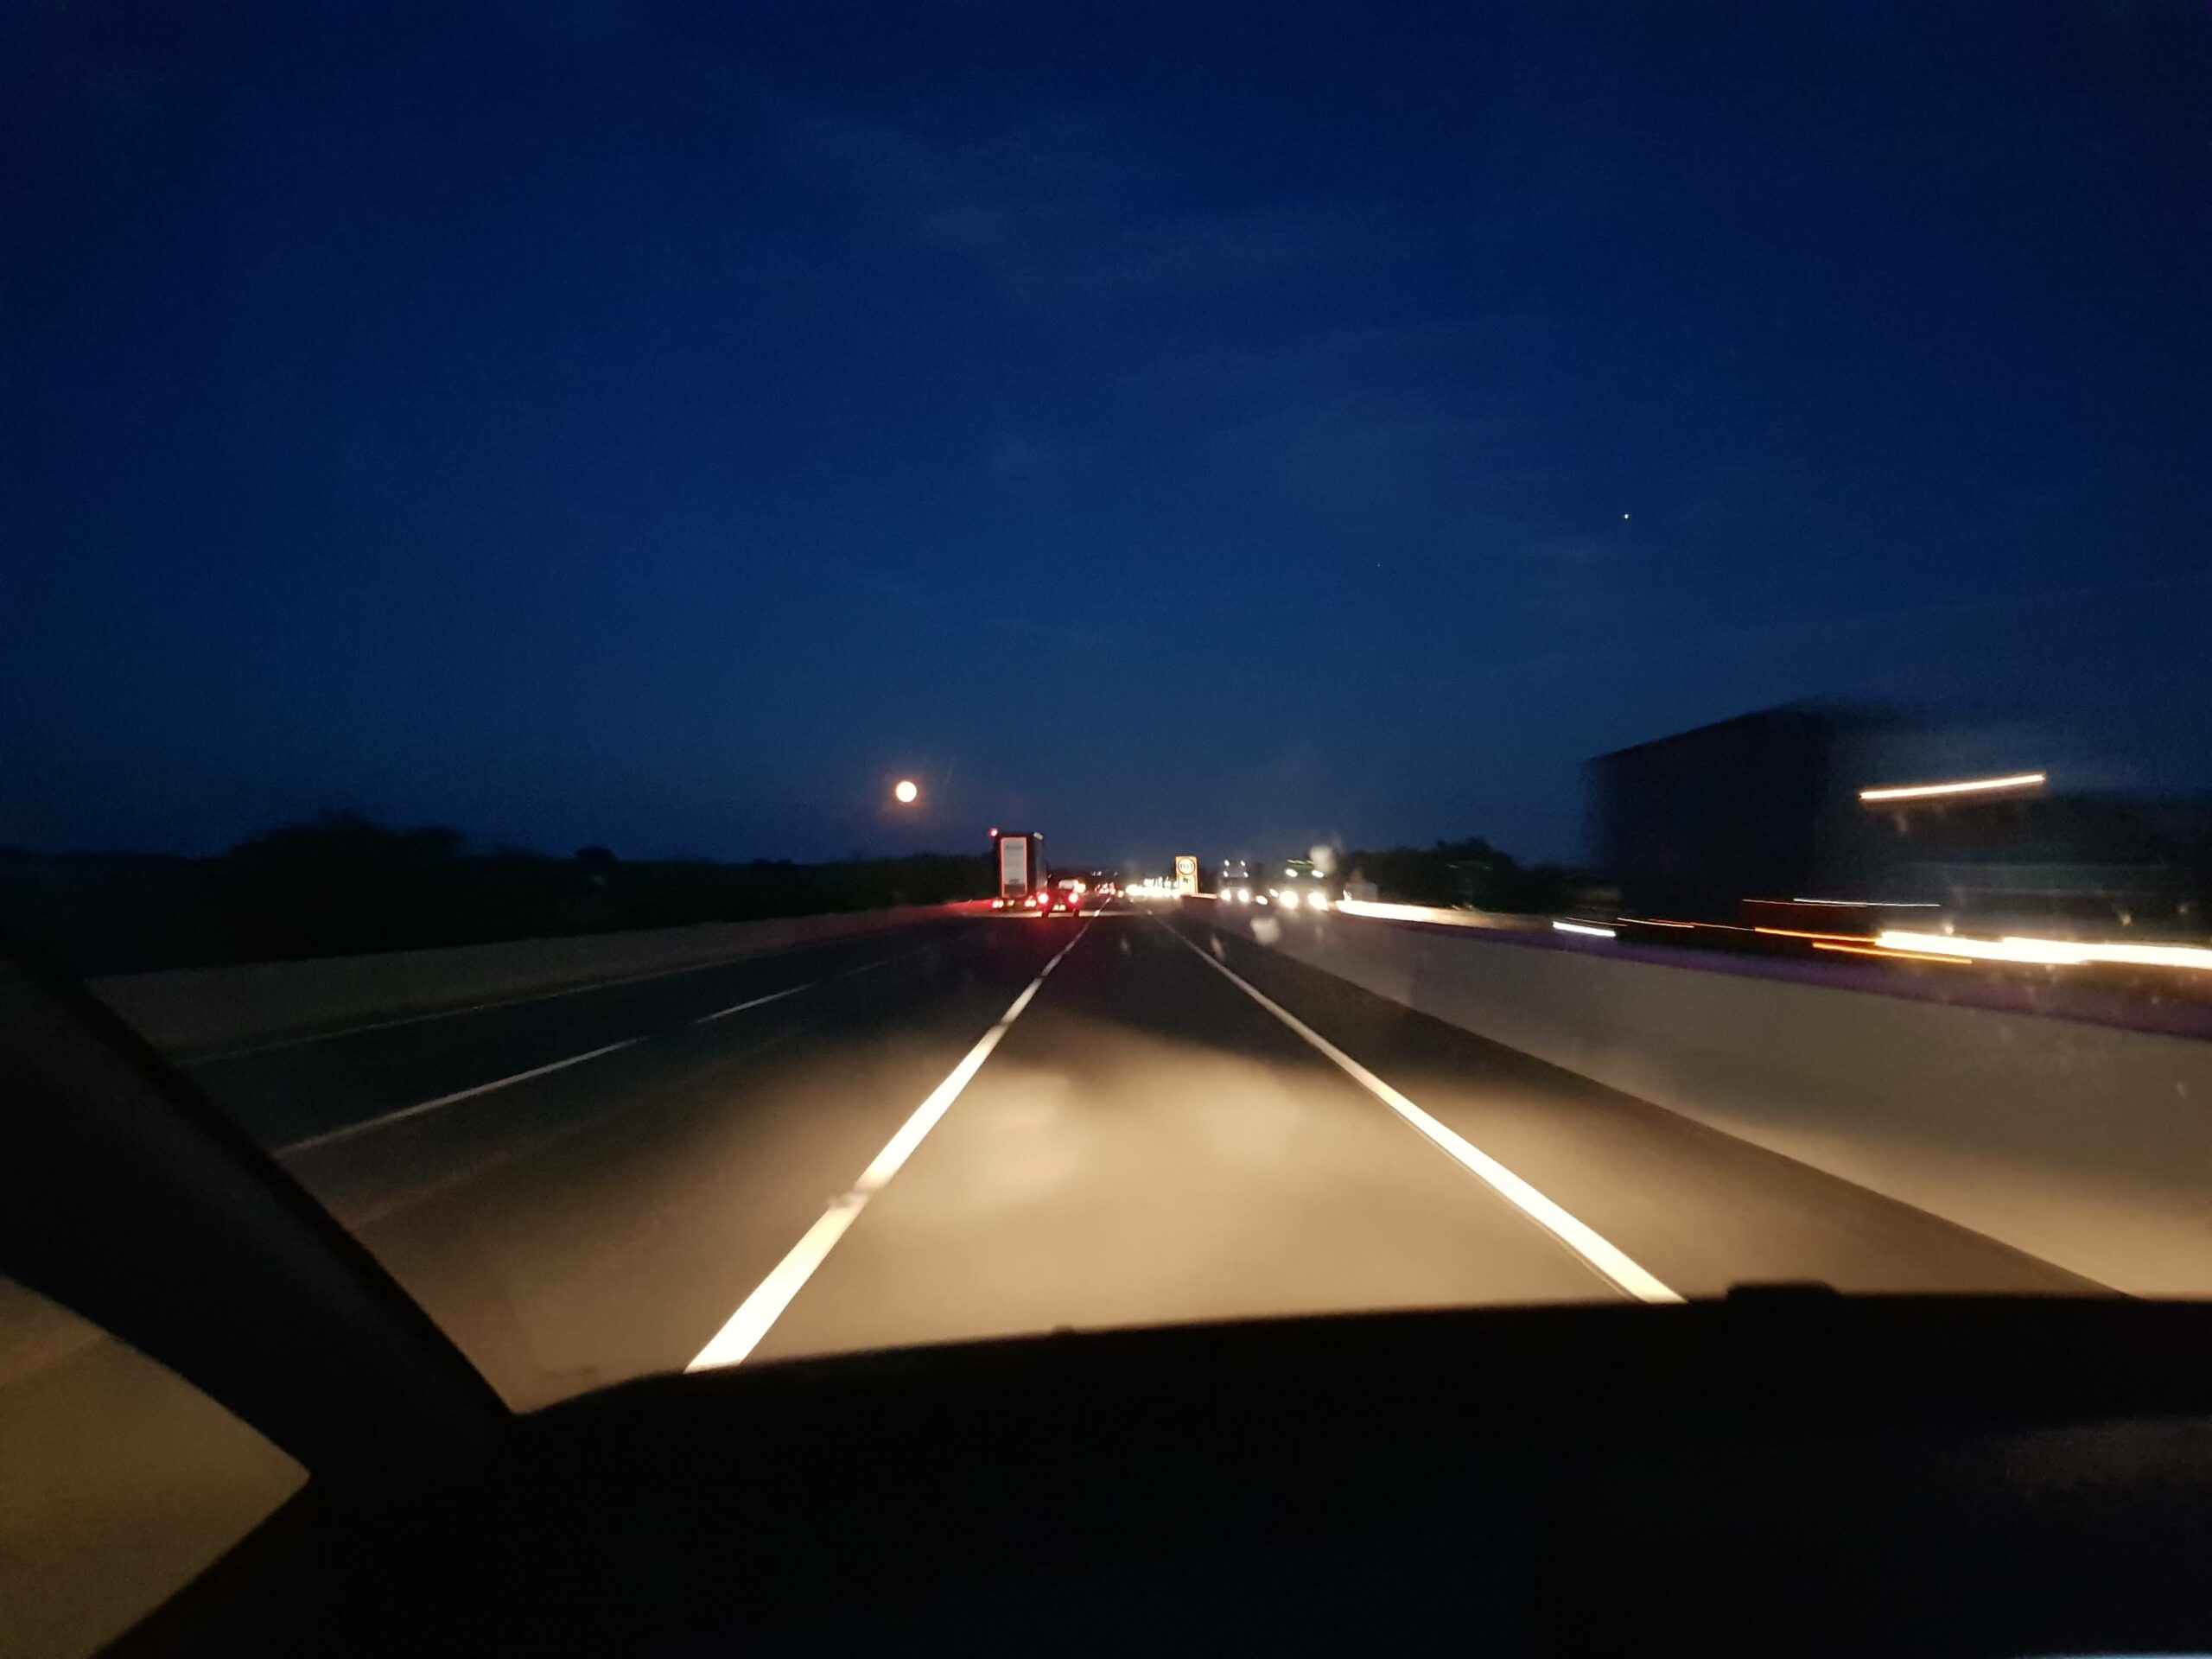 View from the passenger seat of a car along a moonlit motorway